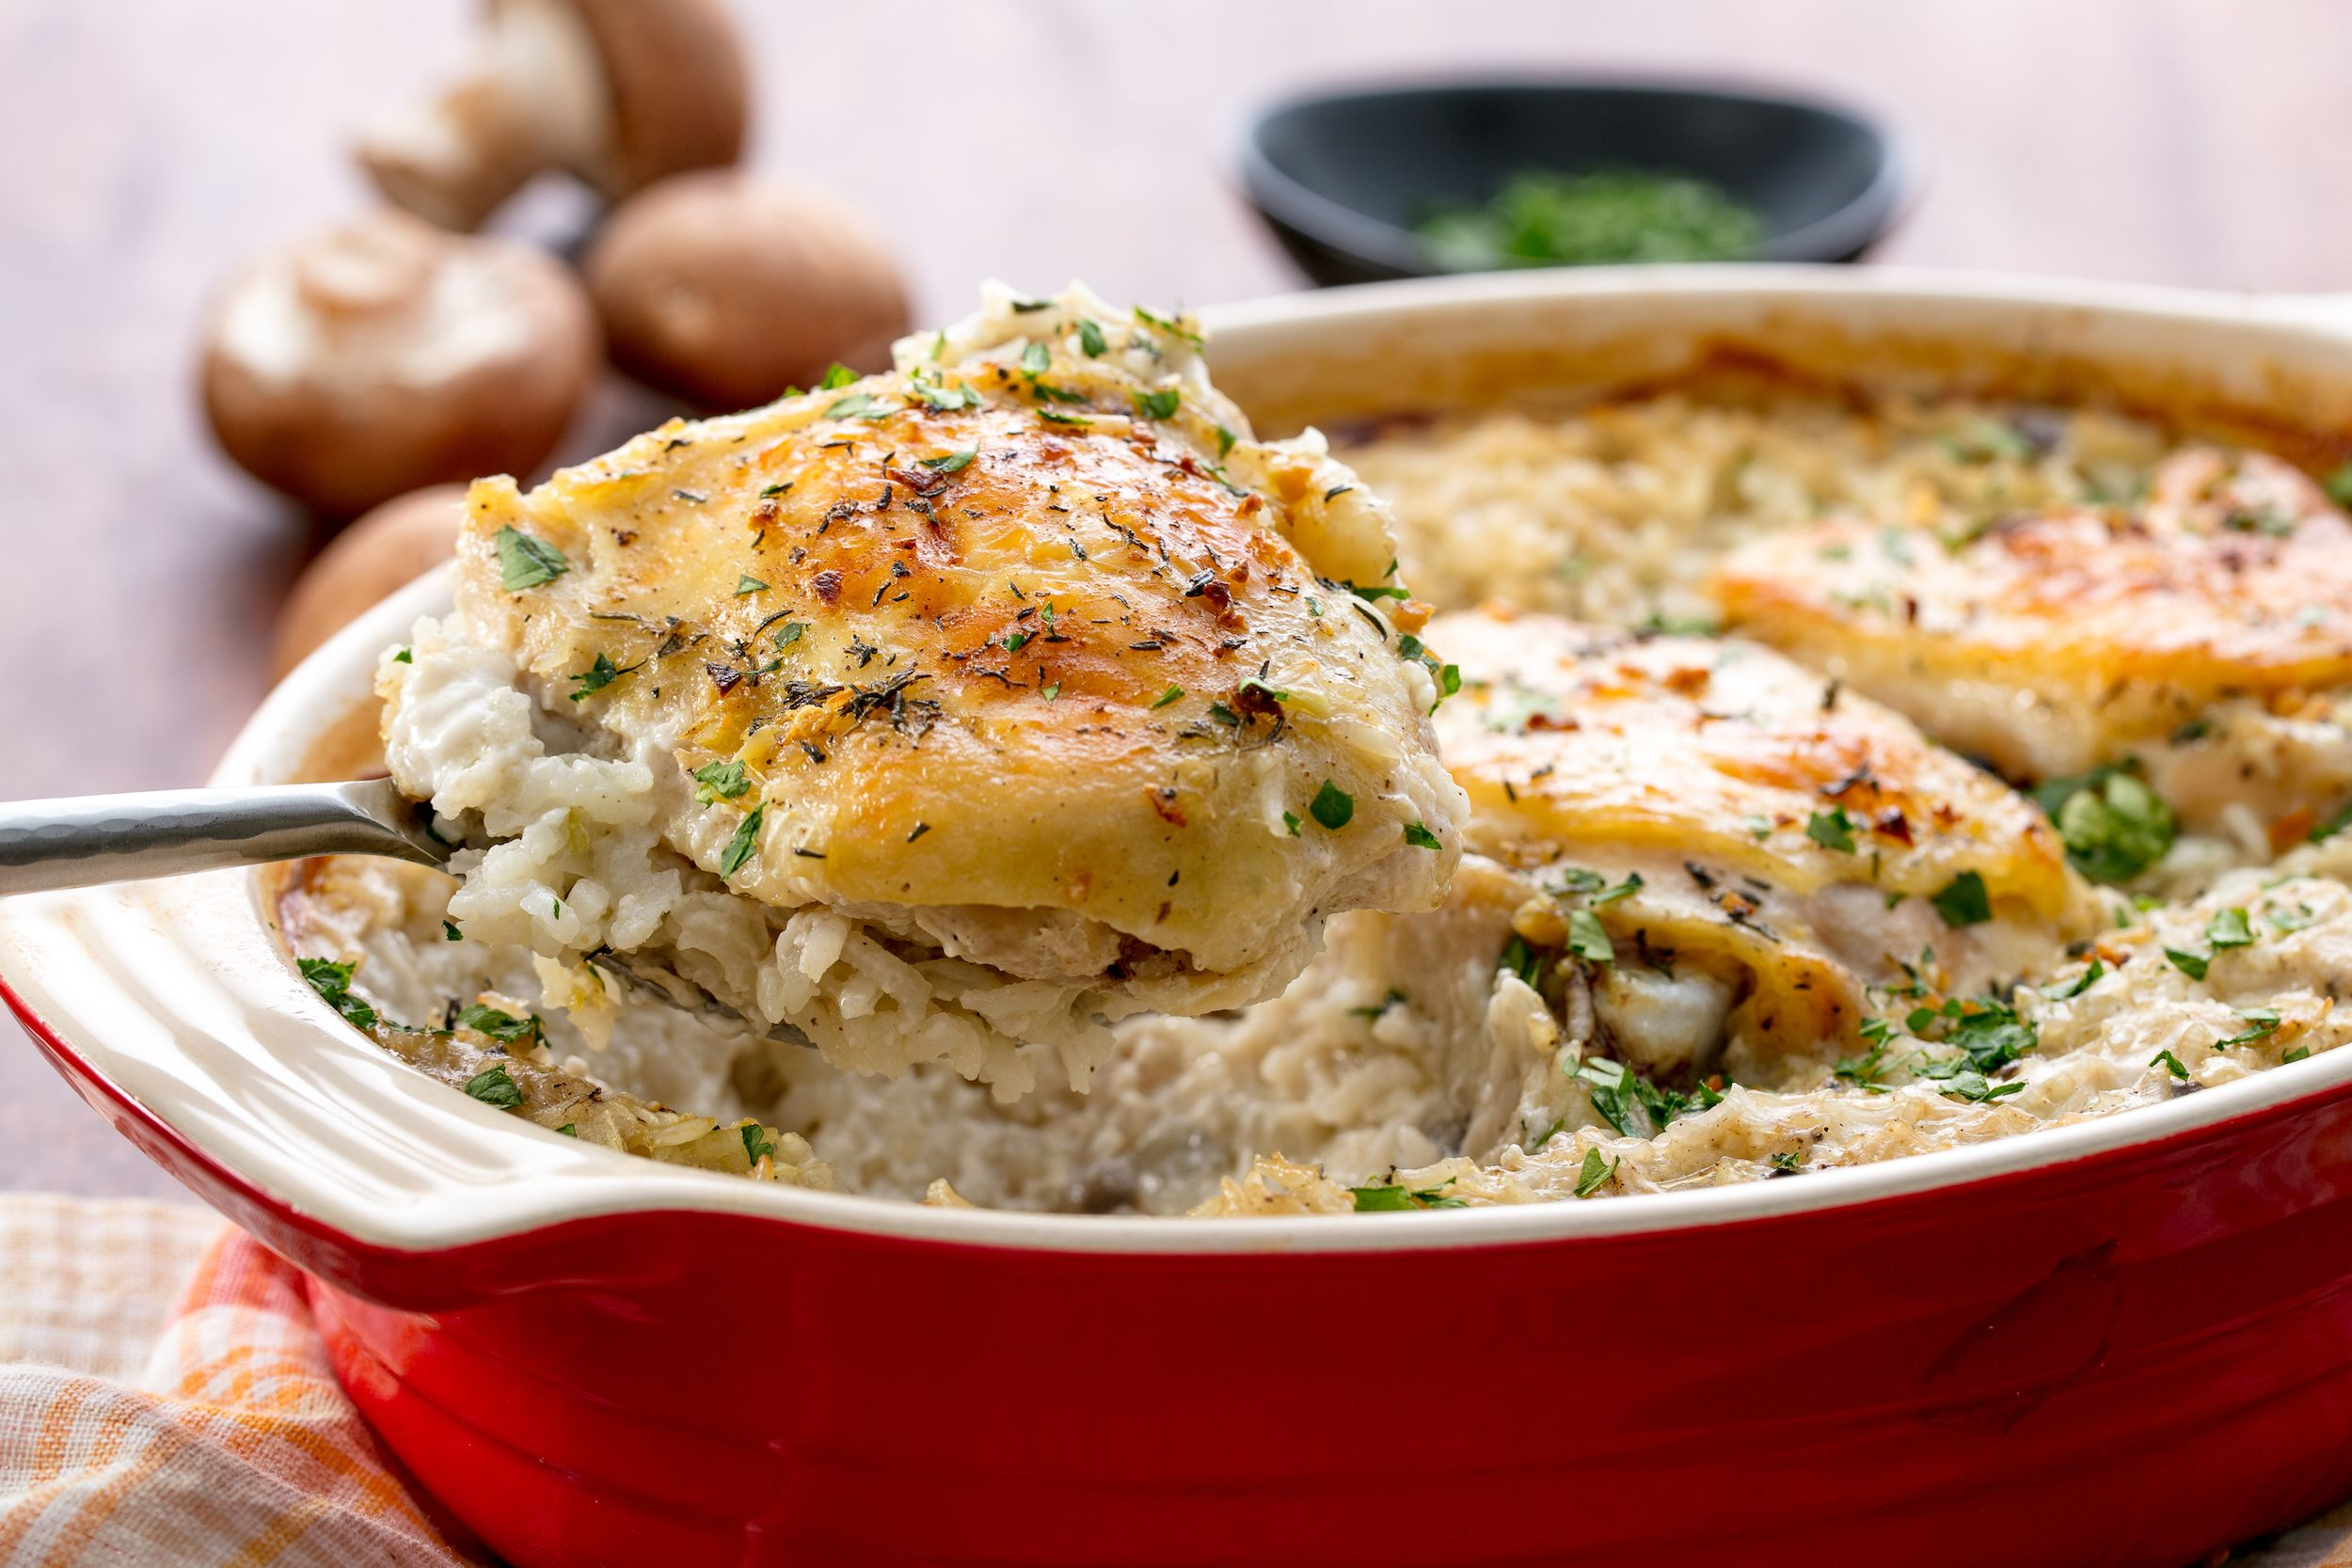 Easy Chicken And Rice Casserole Recipe How To Make Baked Chicken And Rice Casserole With Cream Of Mushroom Soup